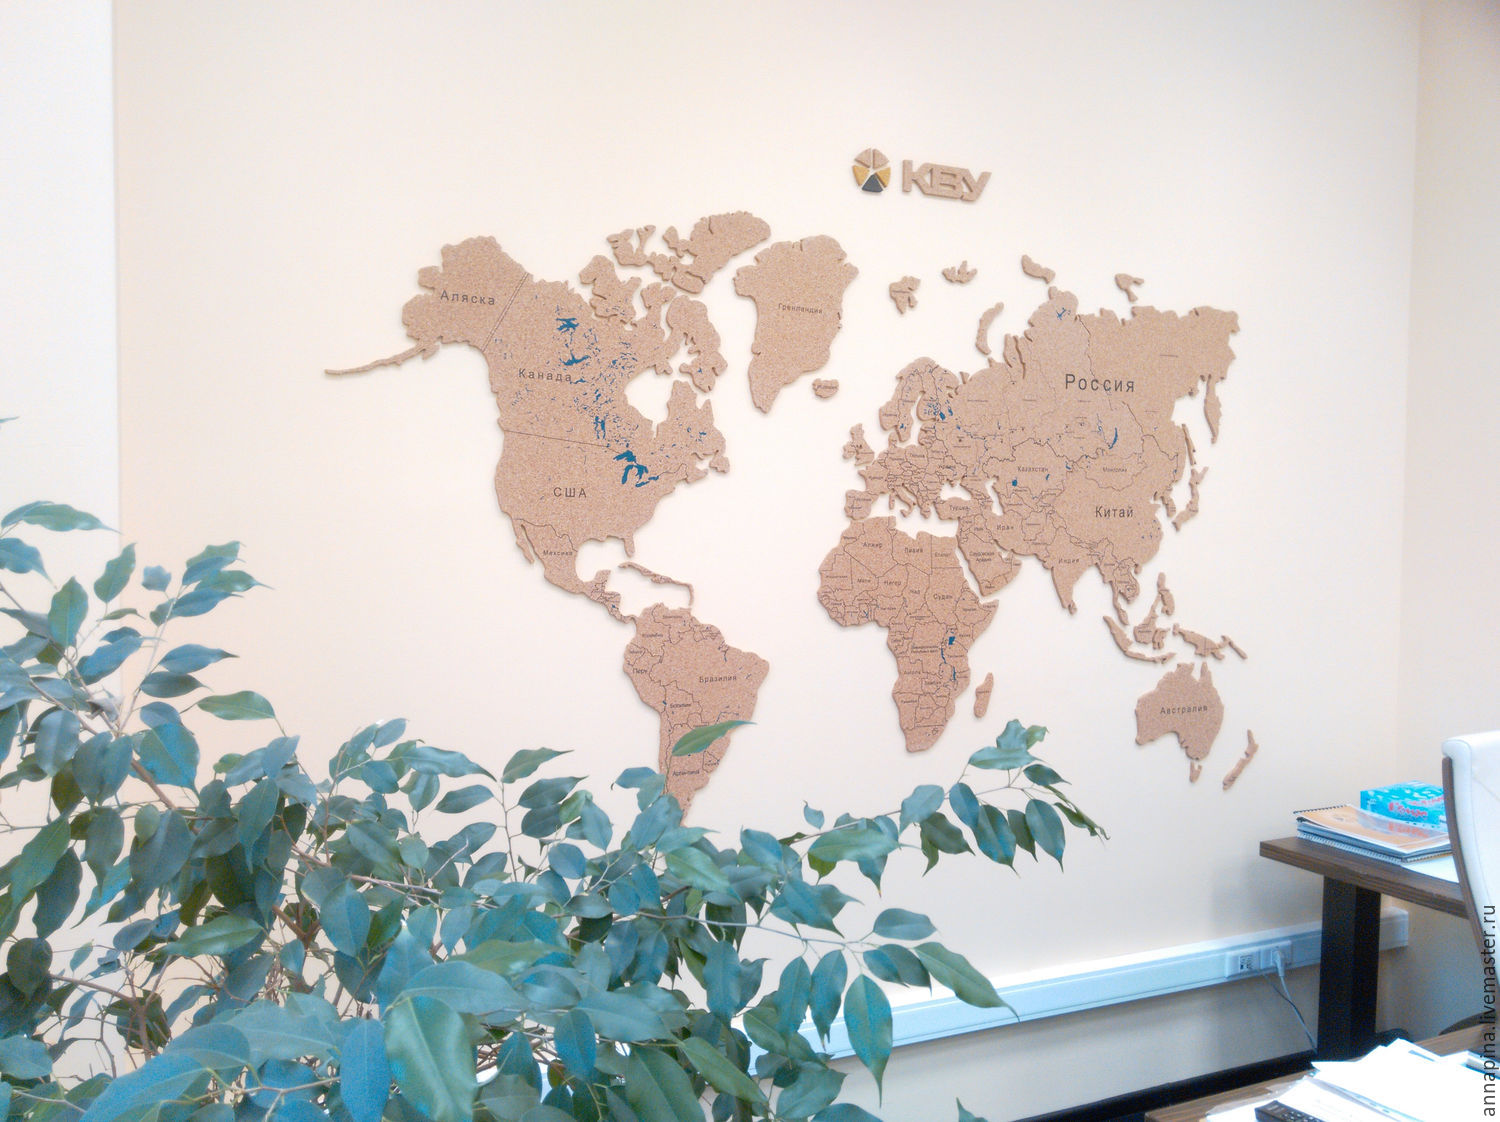 Coarkboard world map shop online on livemaster with shipping coarkboard world map anna pina design online shopping on my livemaster gumiabroncs Gallery